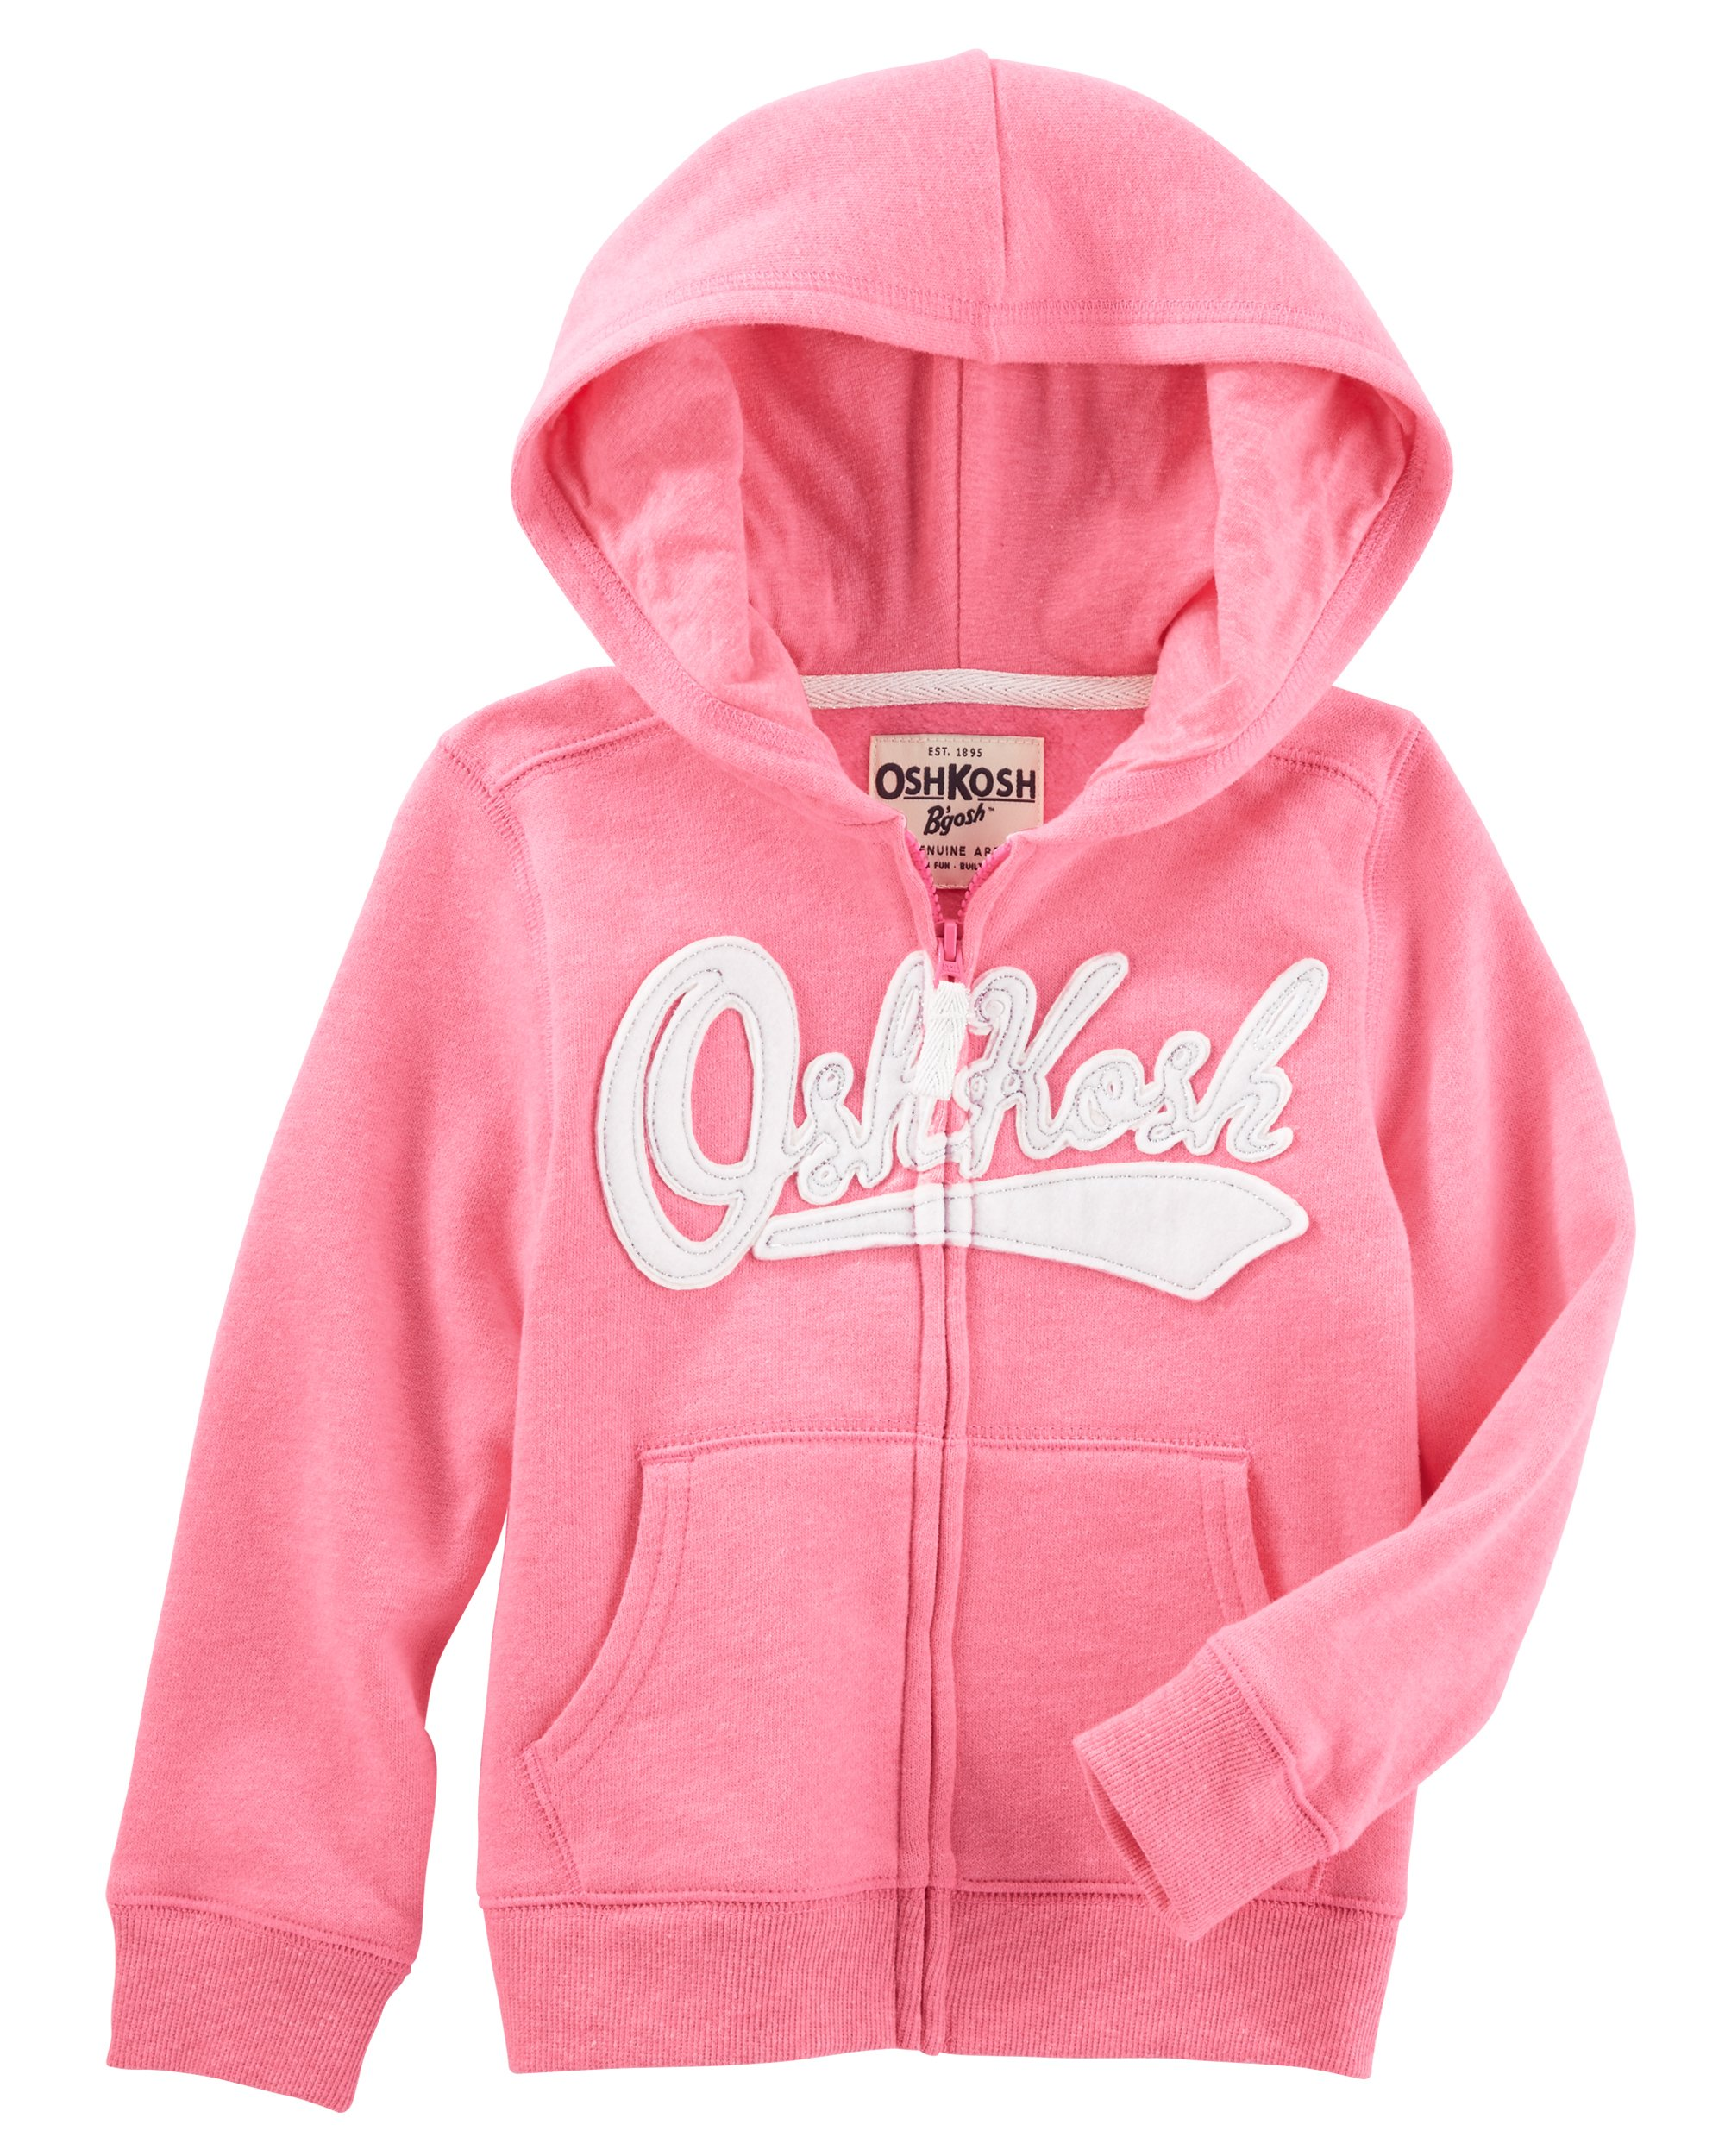 Osh Kosh Girls' Toddler Full Zip Logo Hoodie, Pink, 3T